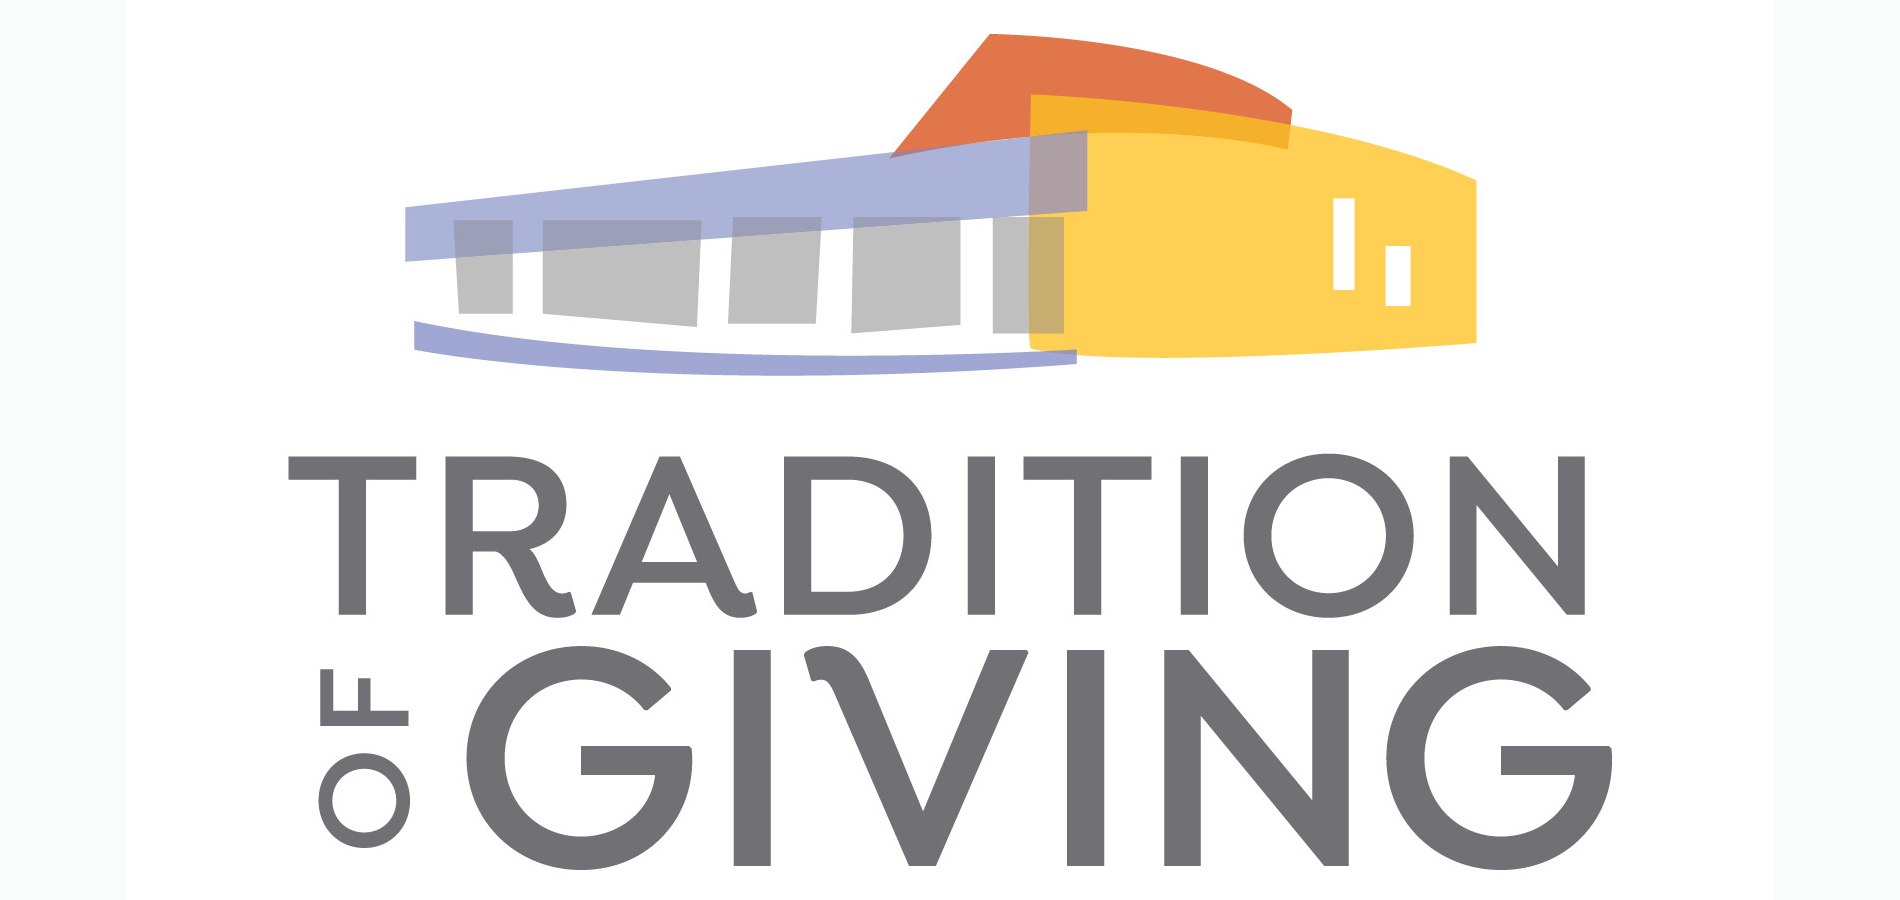 "<a href=""https://www.cstsr.org/form/Tradition-of-Giving-Campaign""